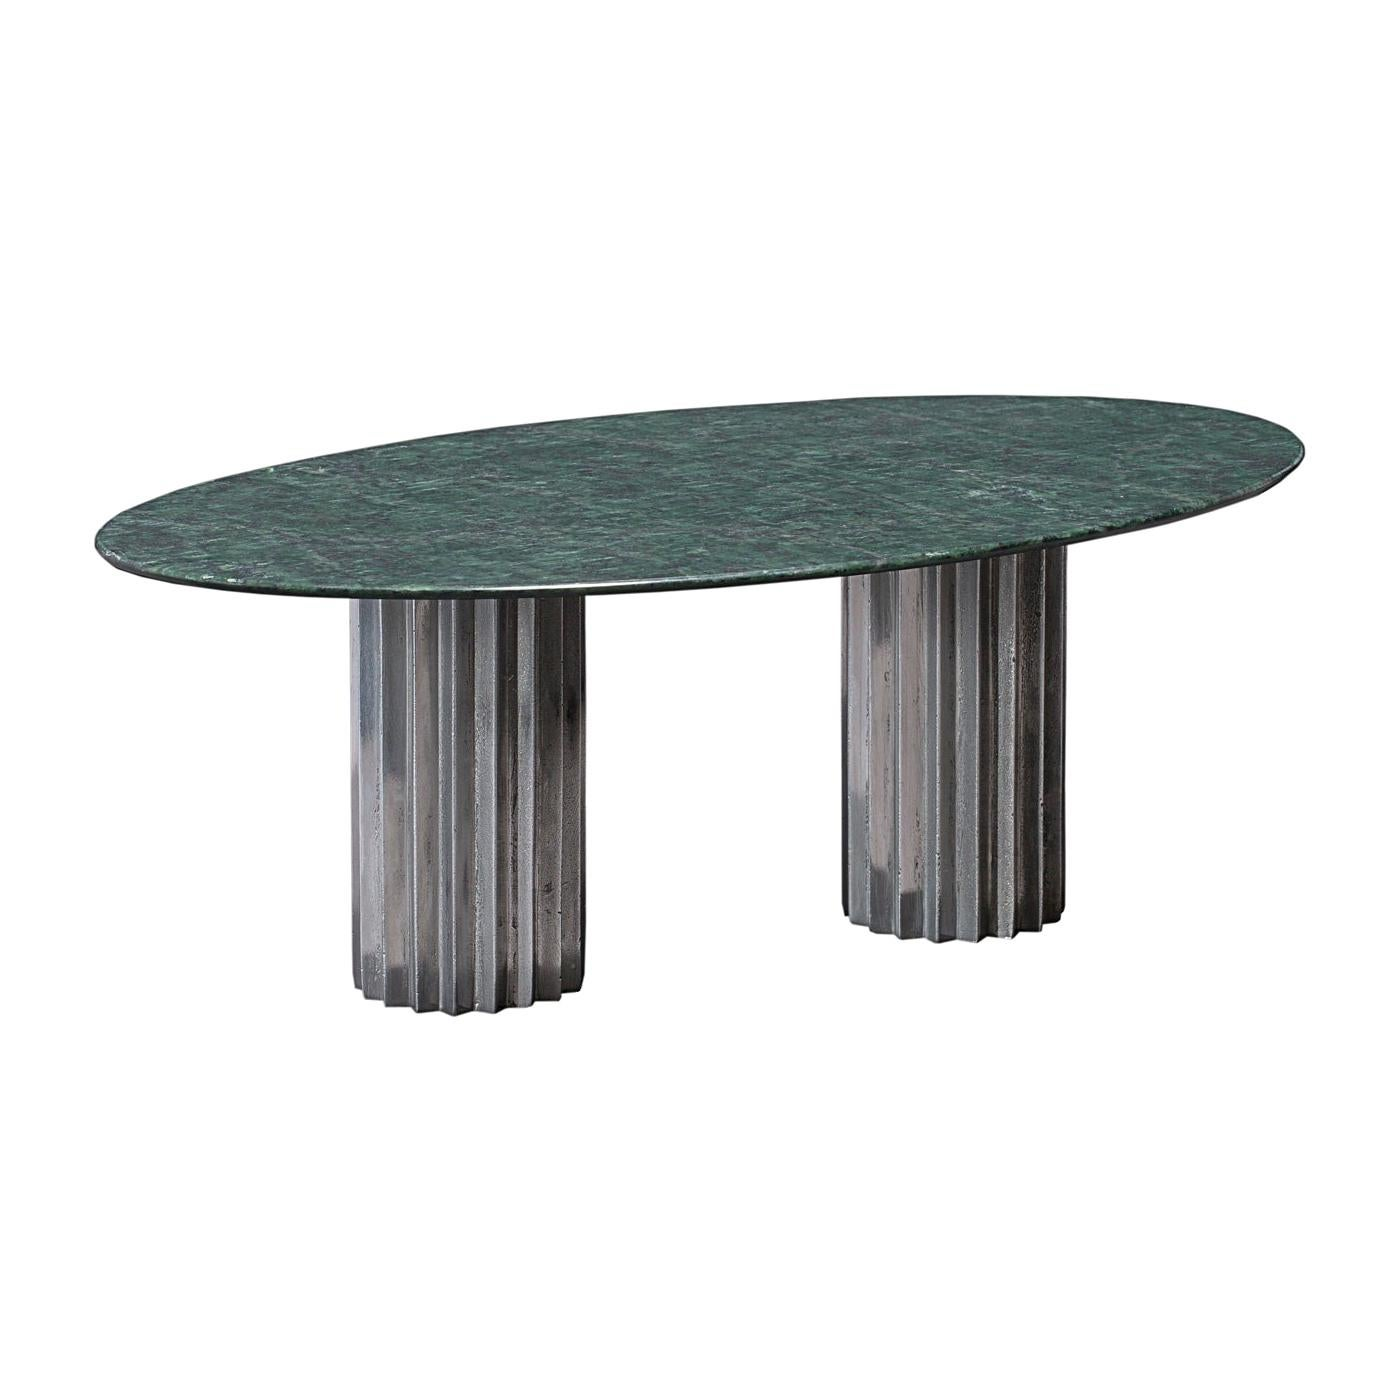 Doris Oval Double Pedestal Dining Table in Green Marble and Cast Aluminum